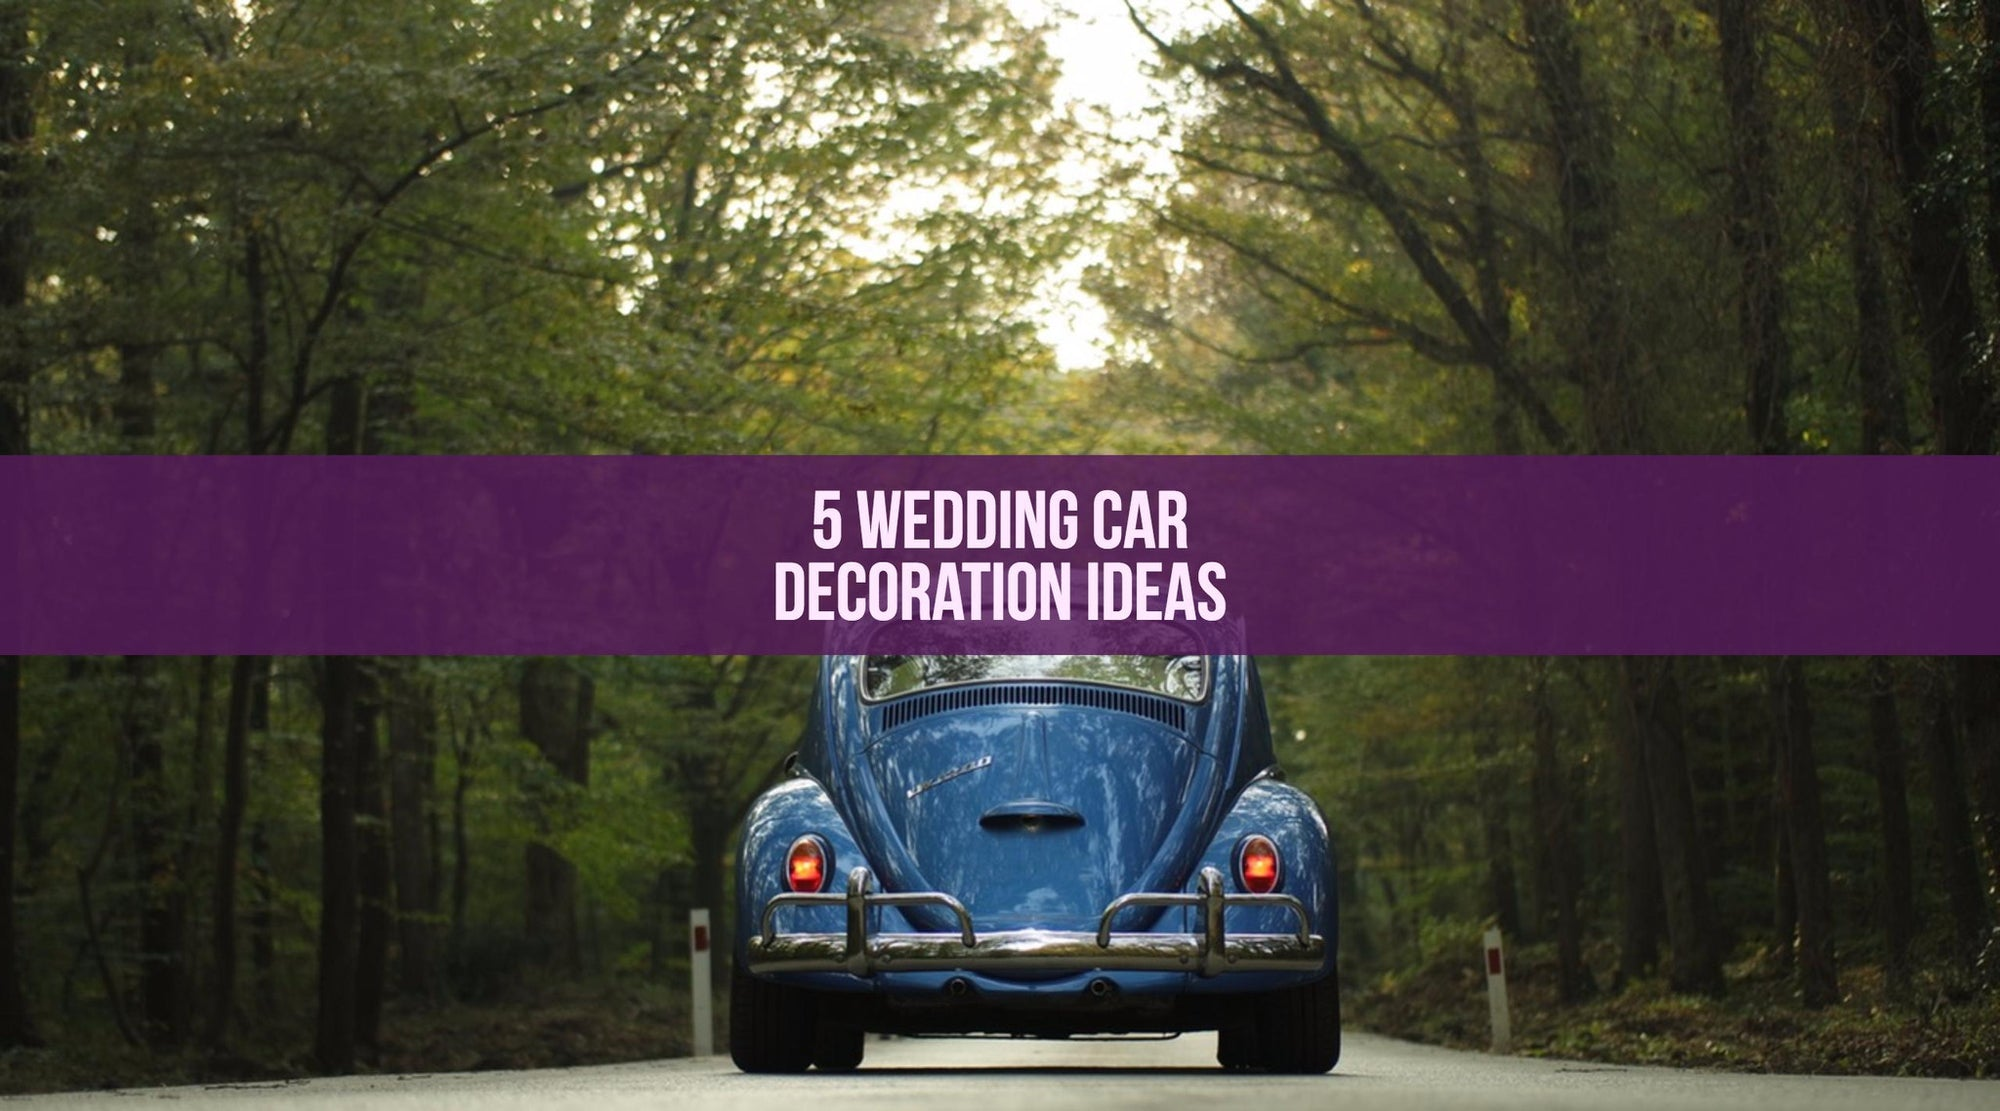 5 Wedding Car Decoration Ideas